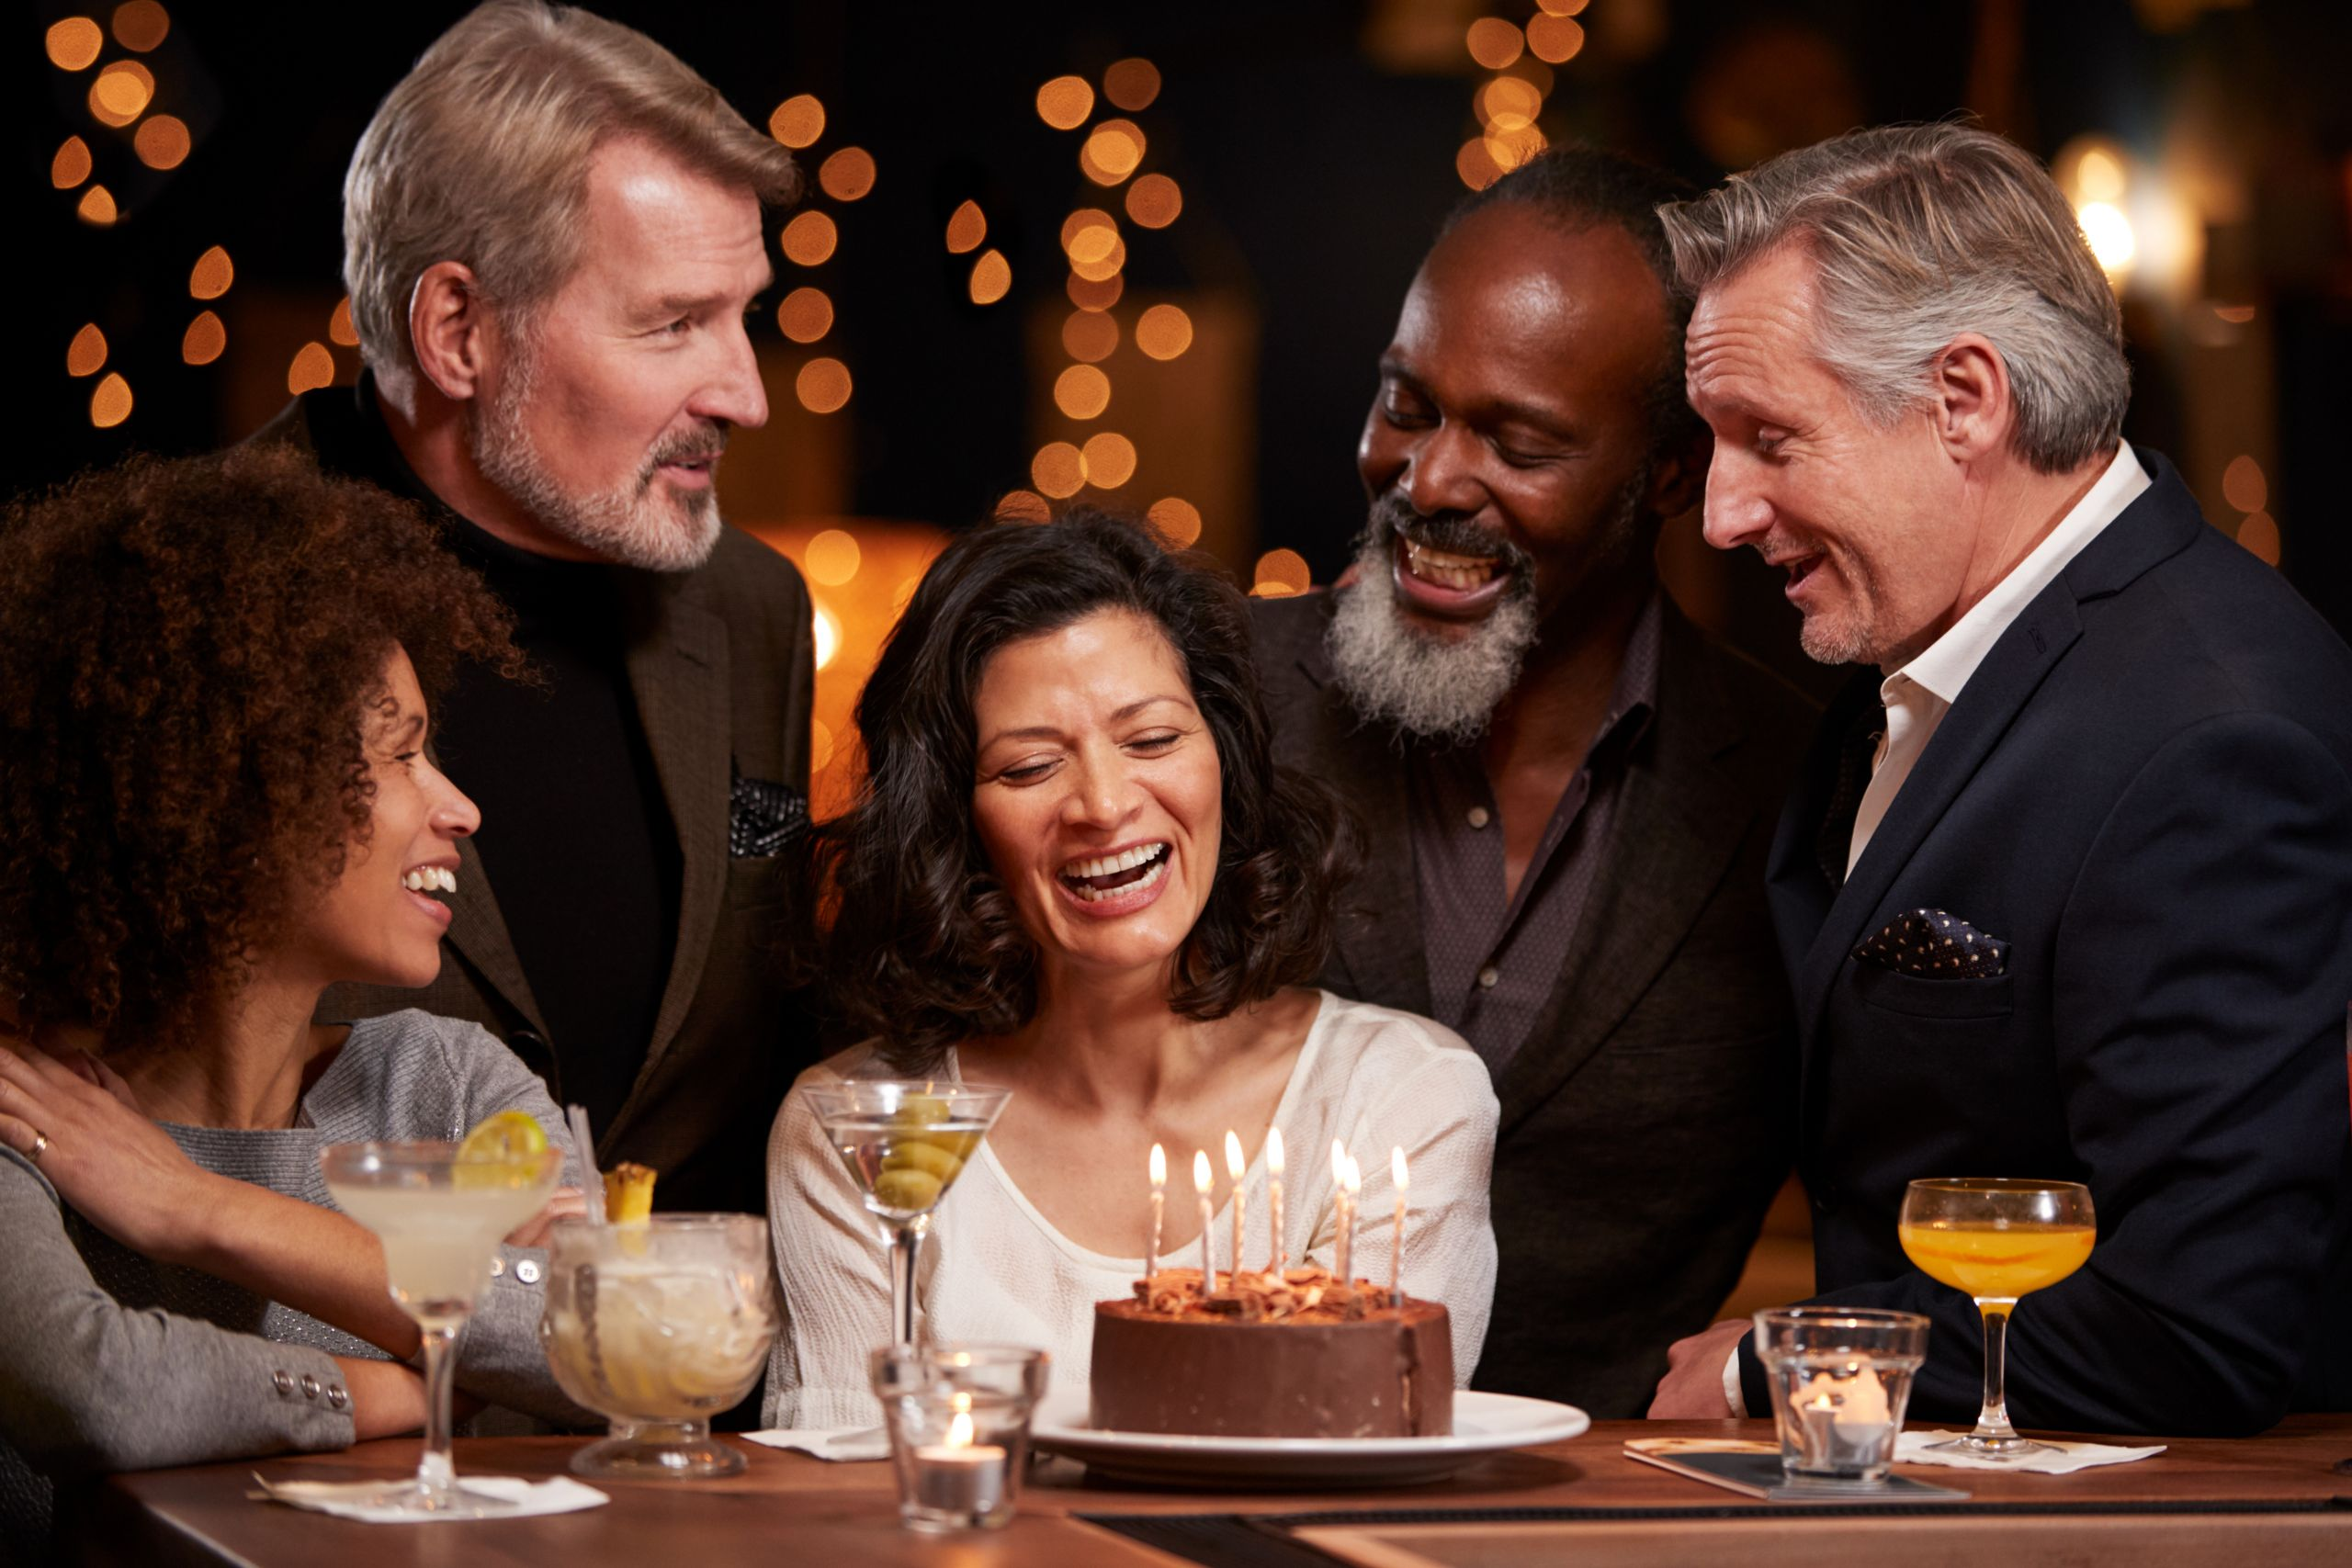 Woman Celebrating 40th Birthday with Friends